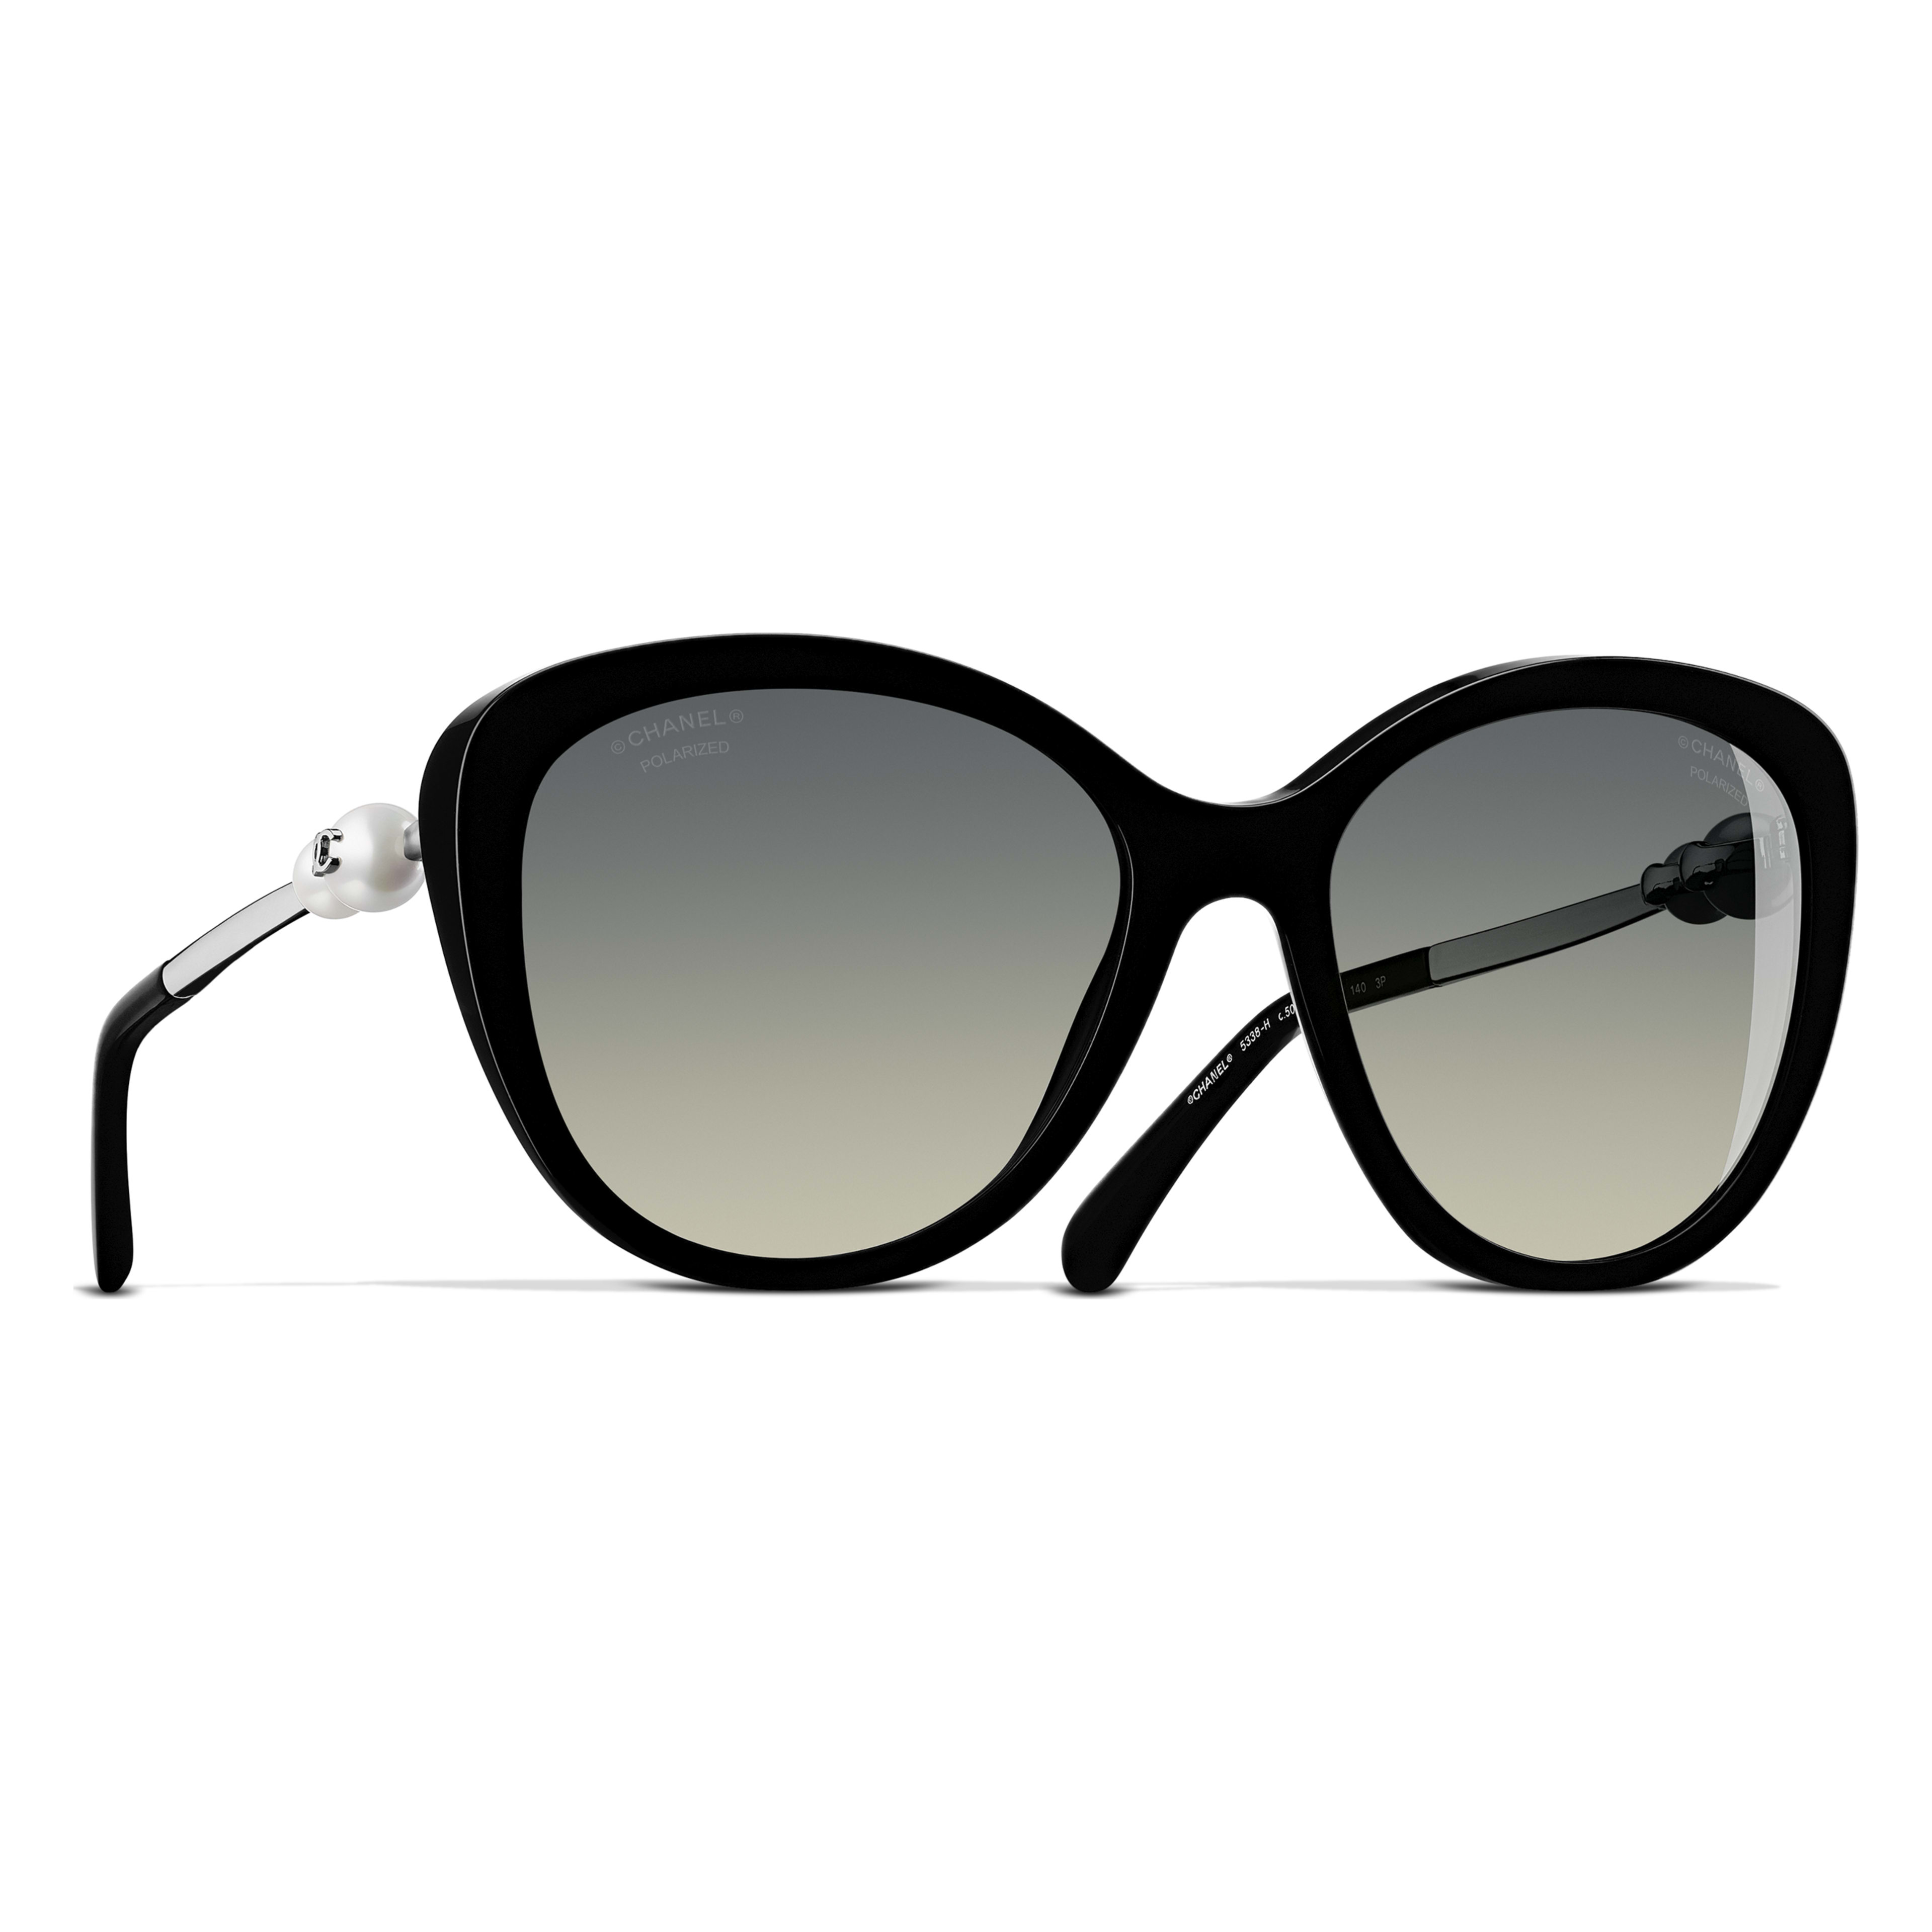 a73c9340dd961 Chanel Butterfly Pearl Sunglasses - Best Image Of Butterfly Imagevet.Co